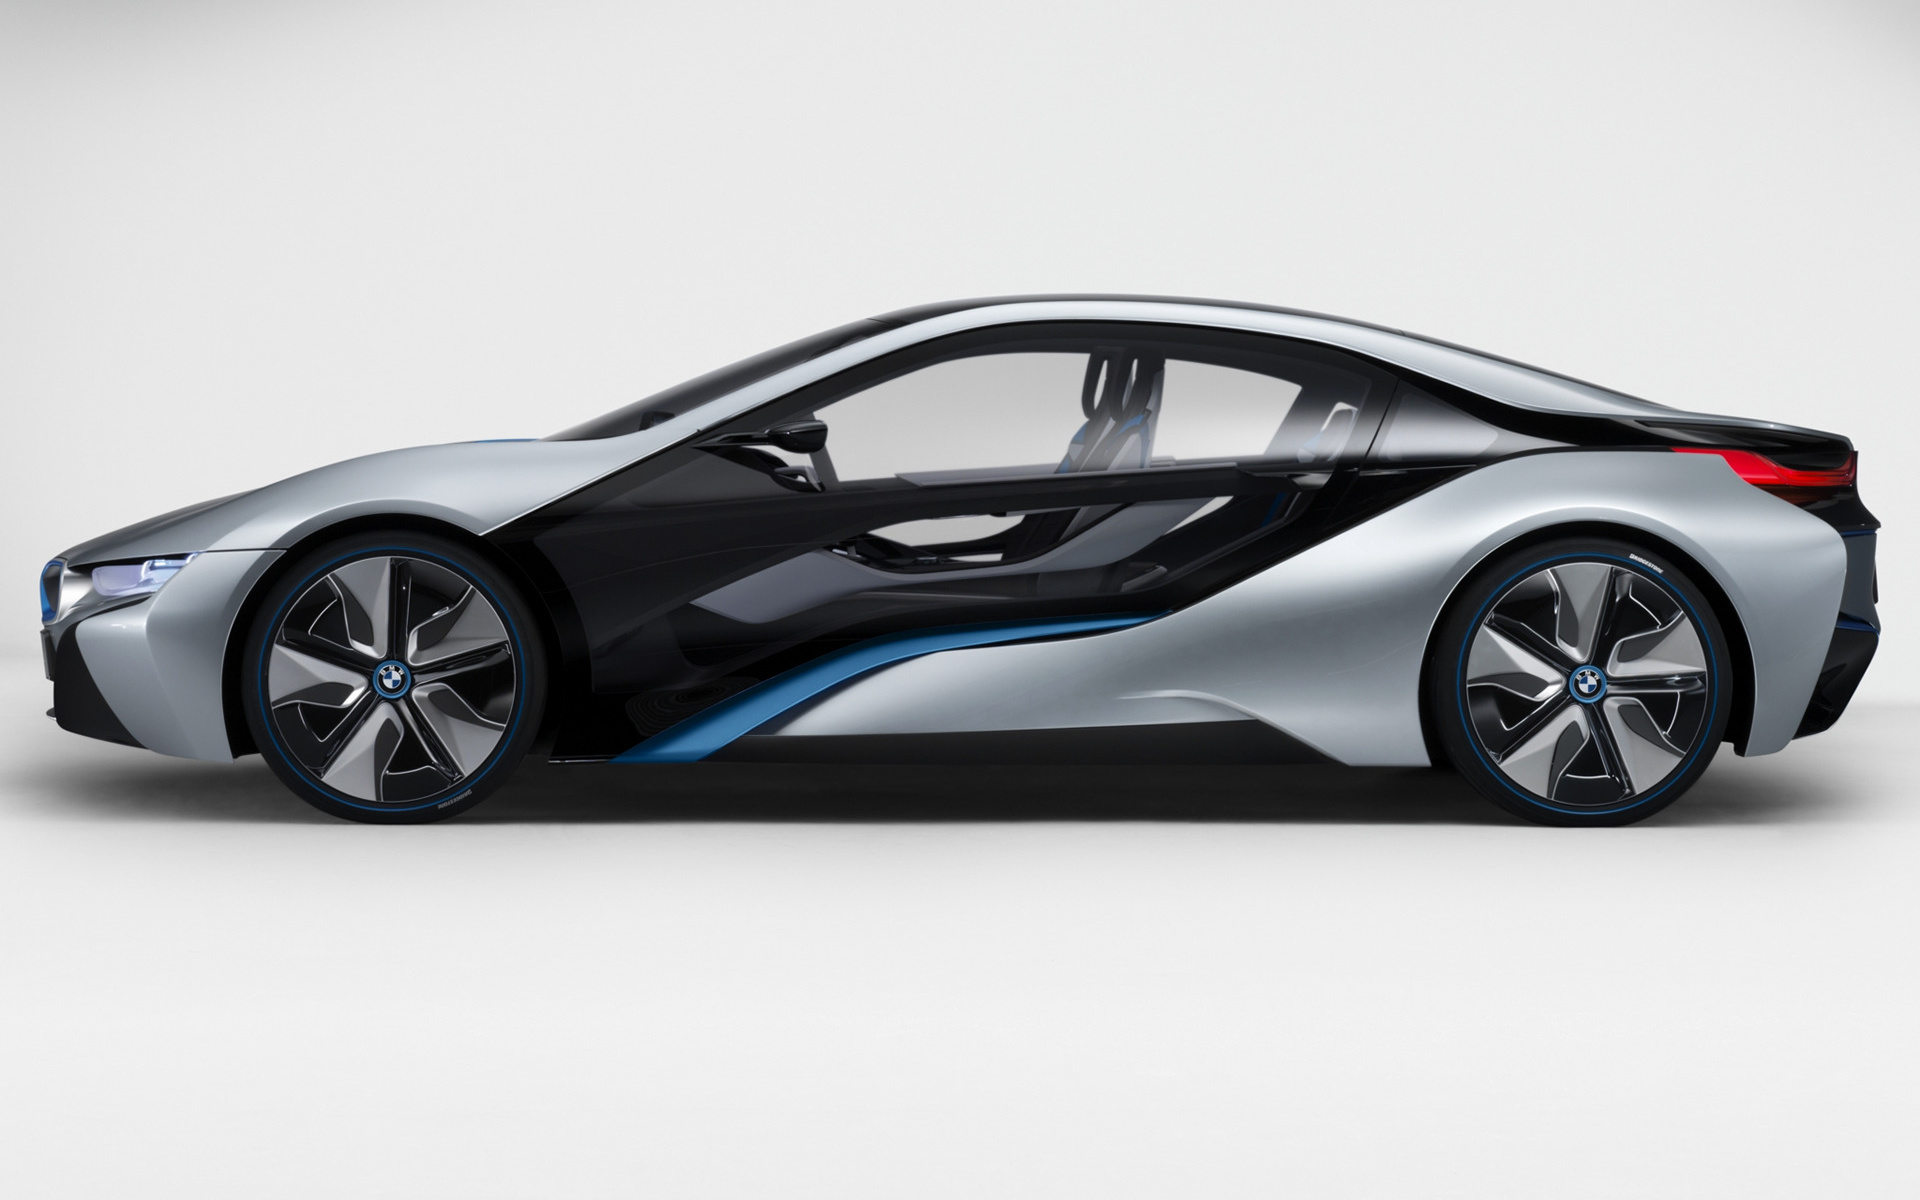 BMW i8 Concept (2011) Wallpapers and HD Images - Car Pixel